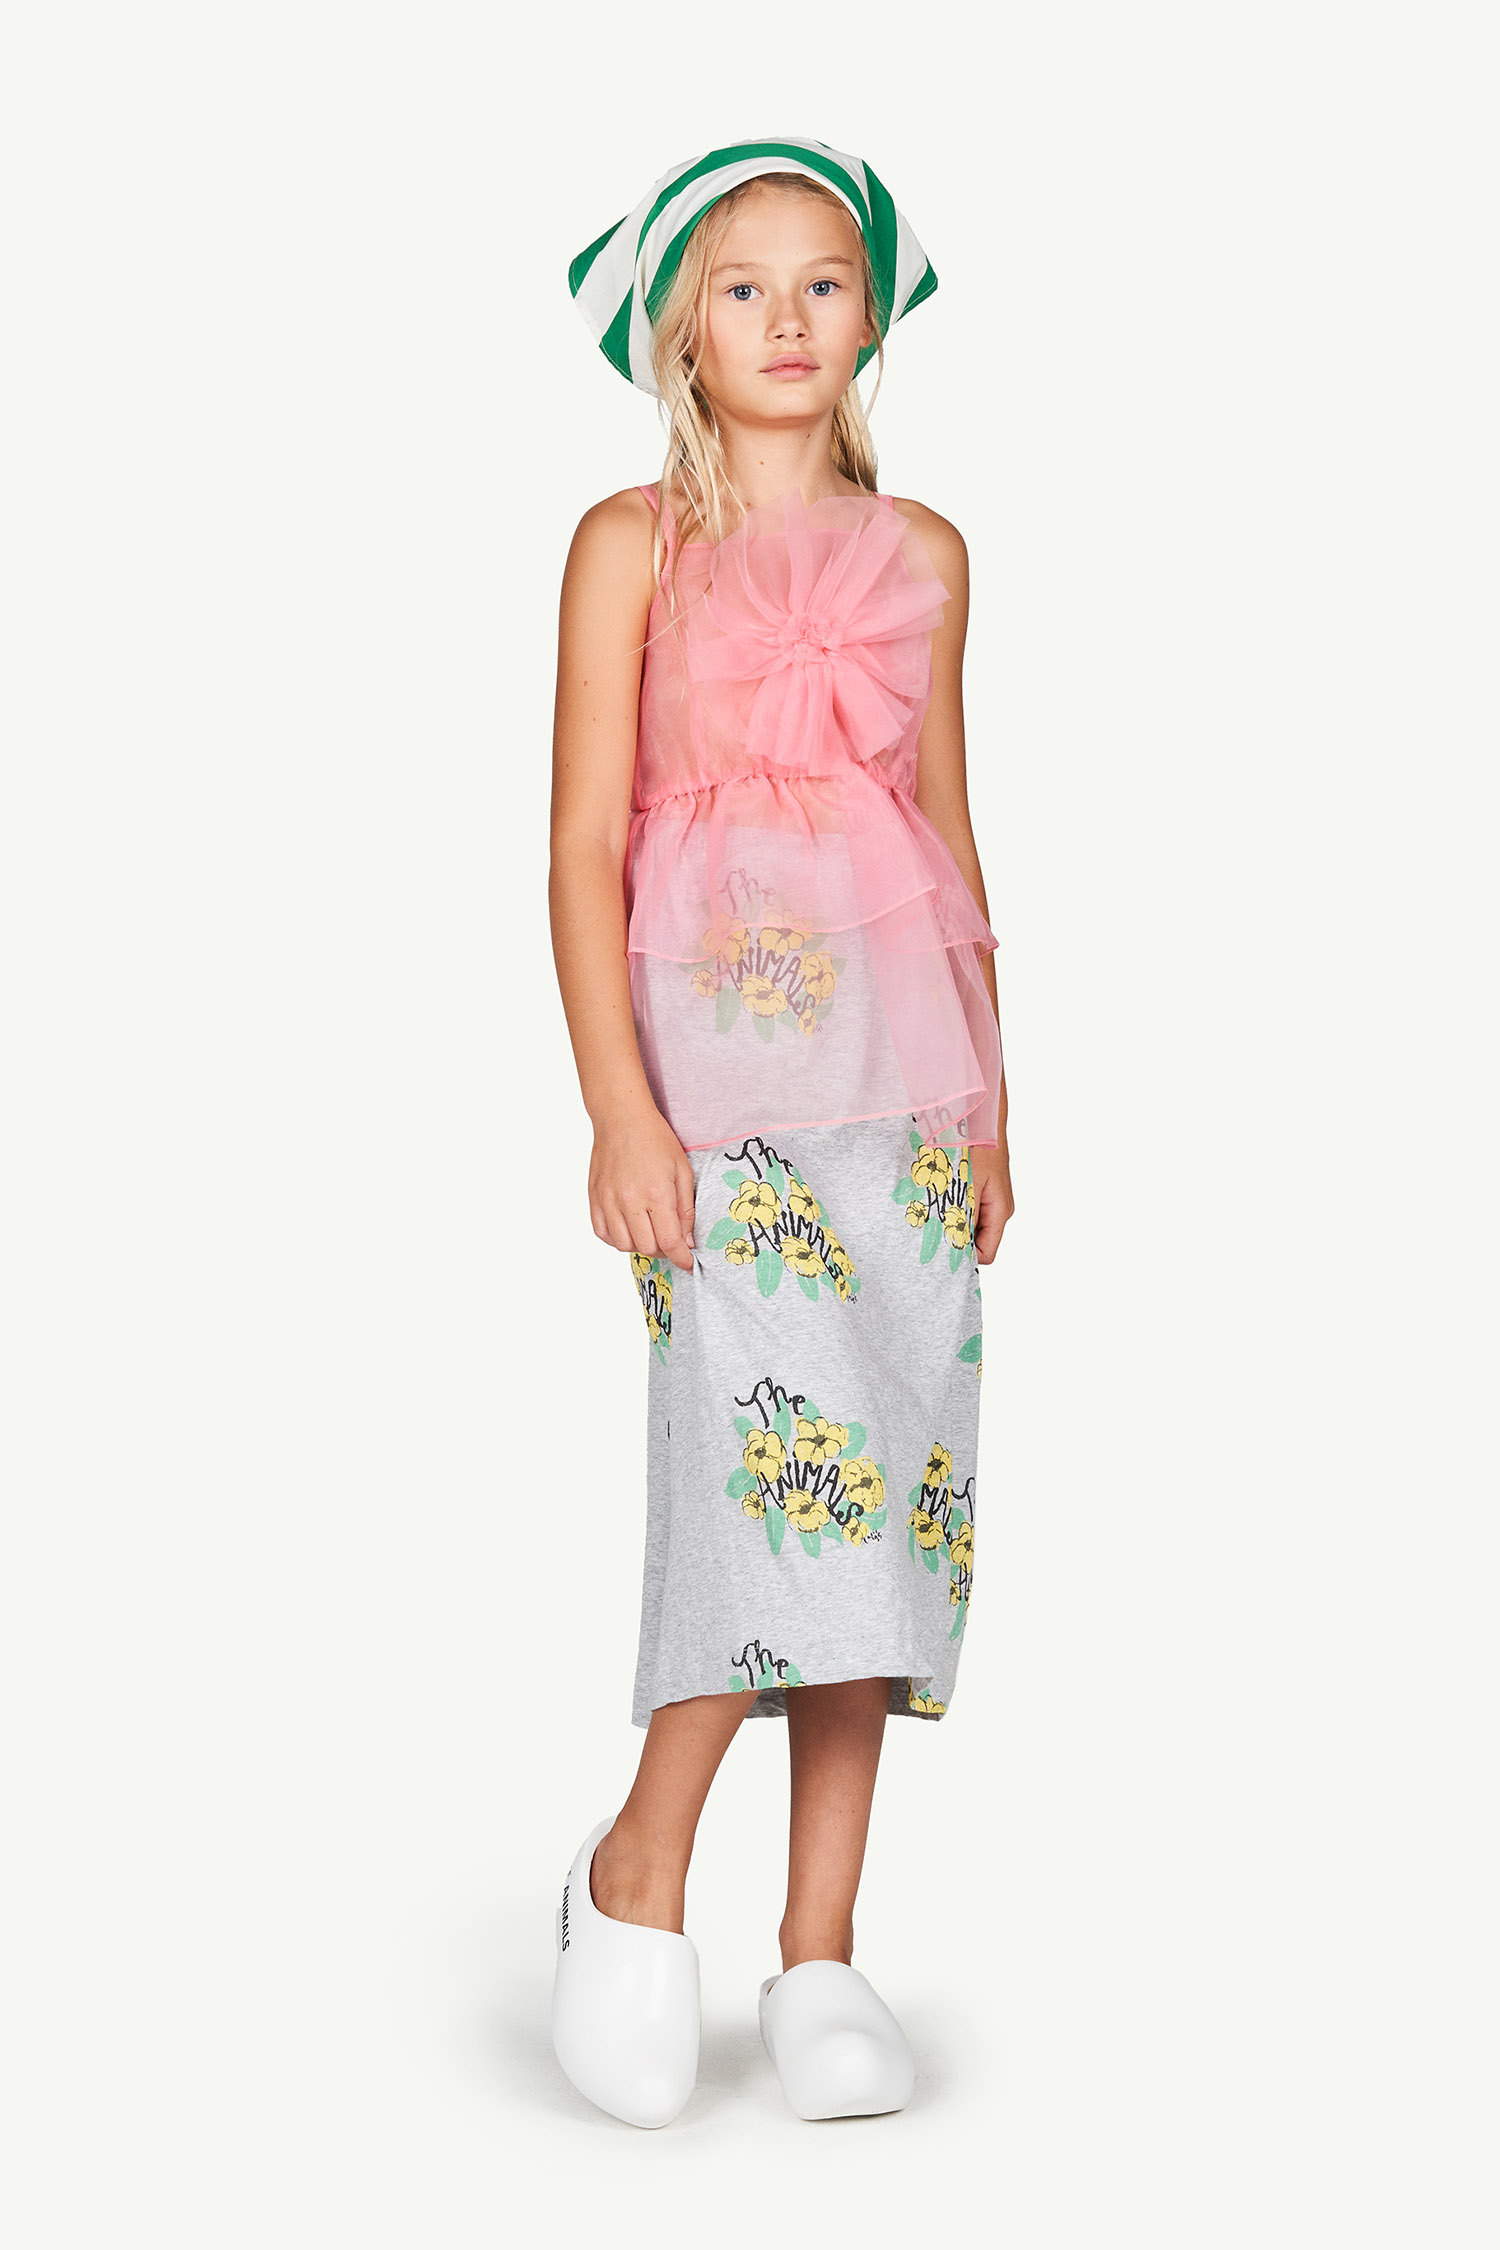 the animals observatory dragonfly kids dress soft pink logo